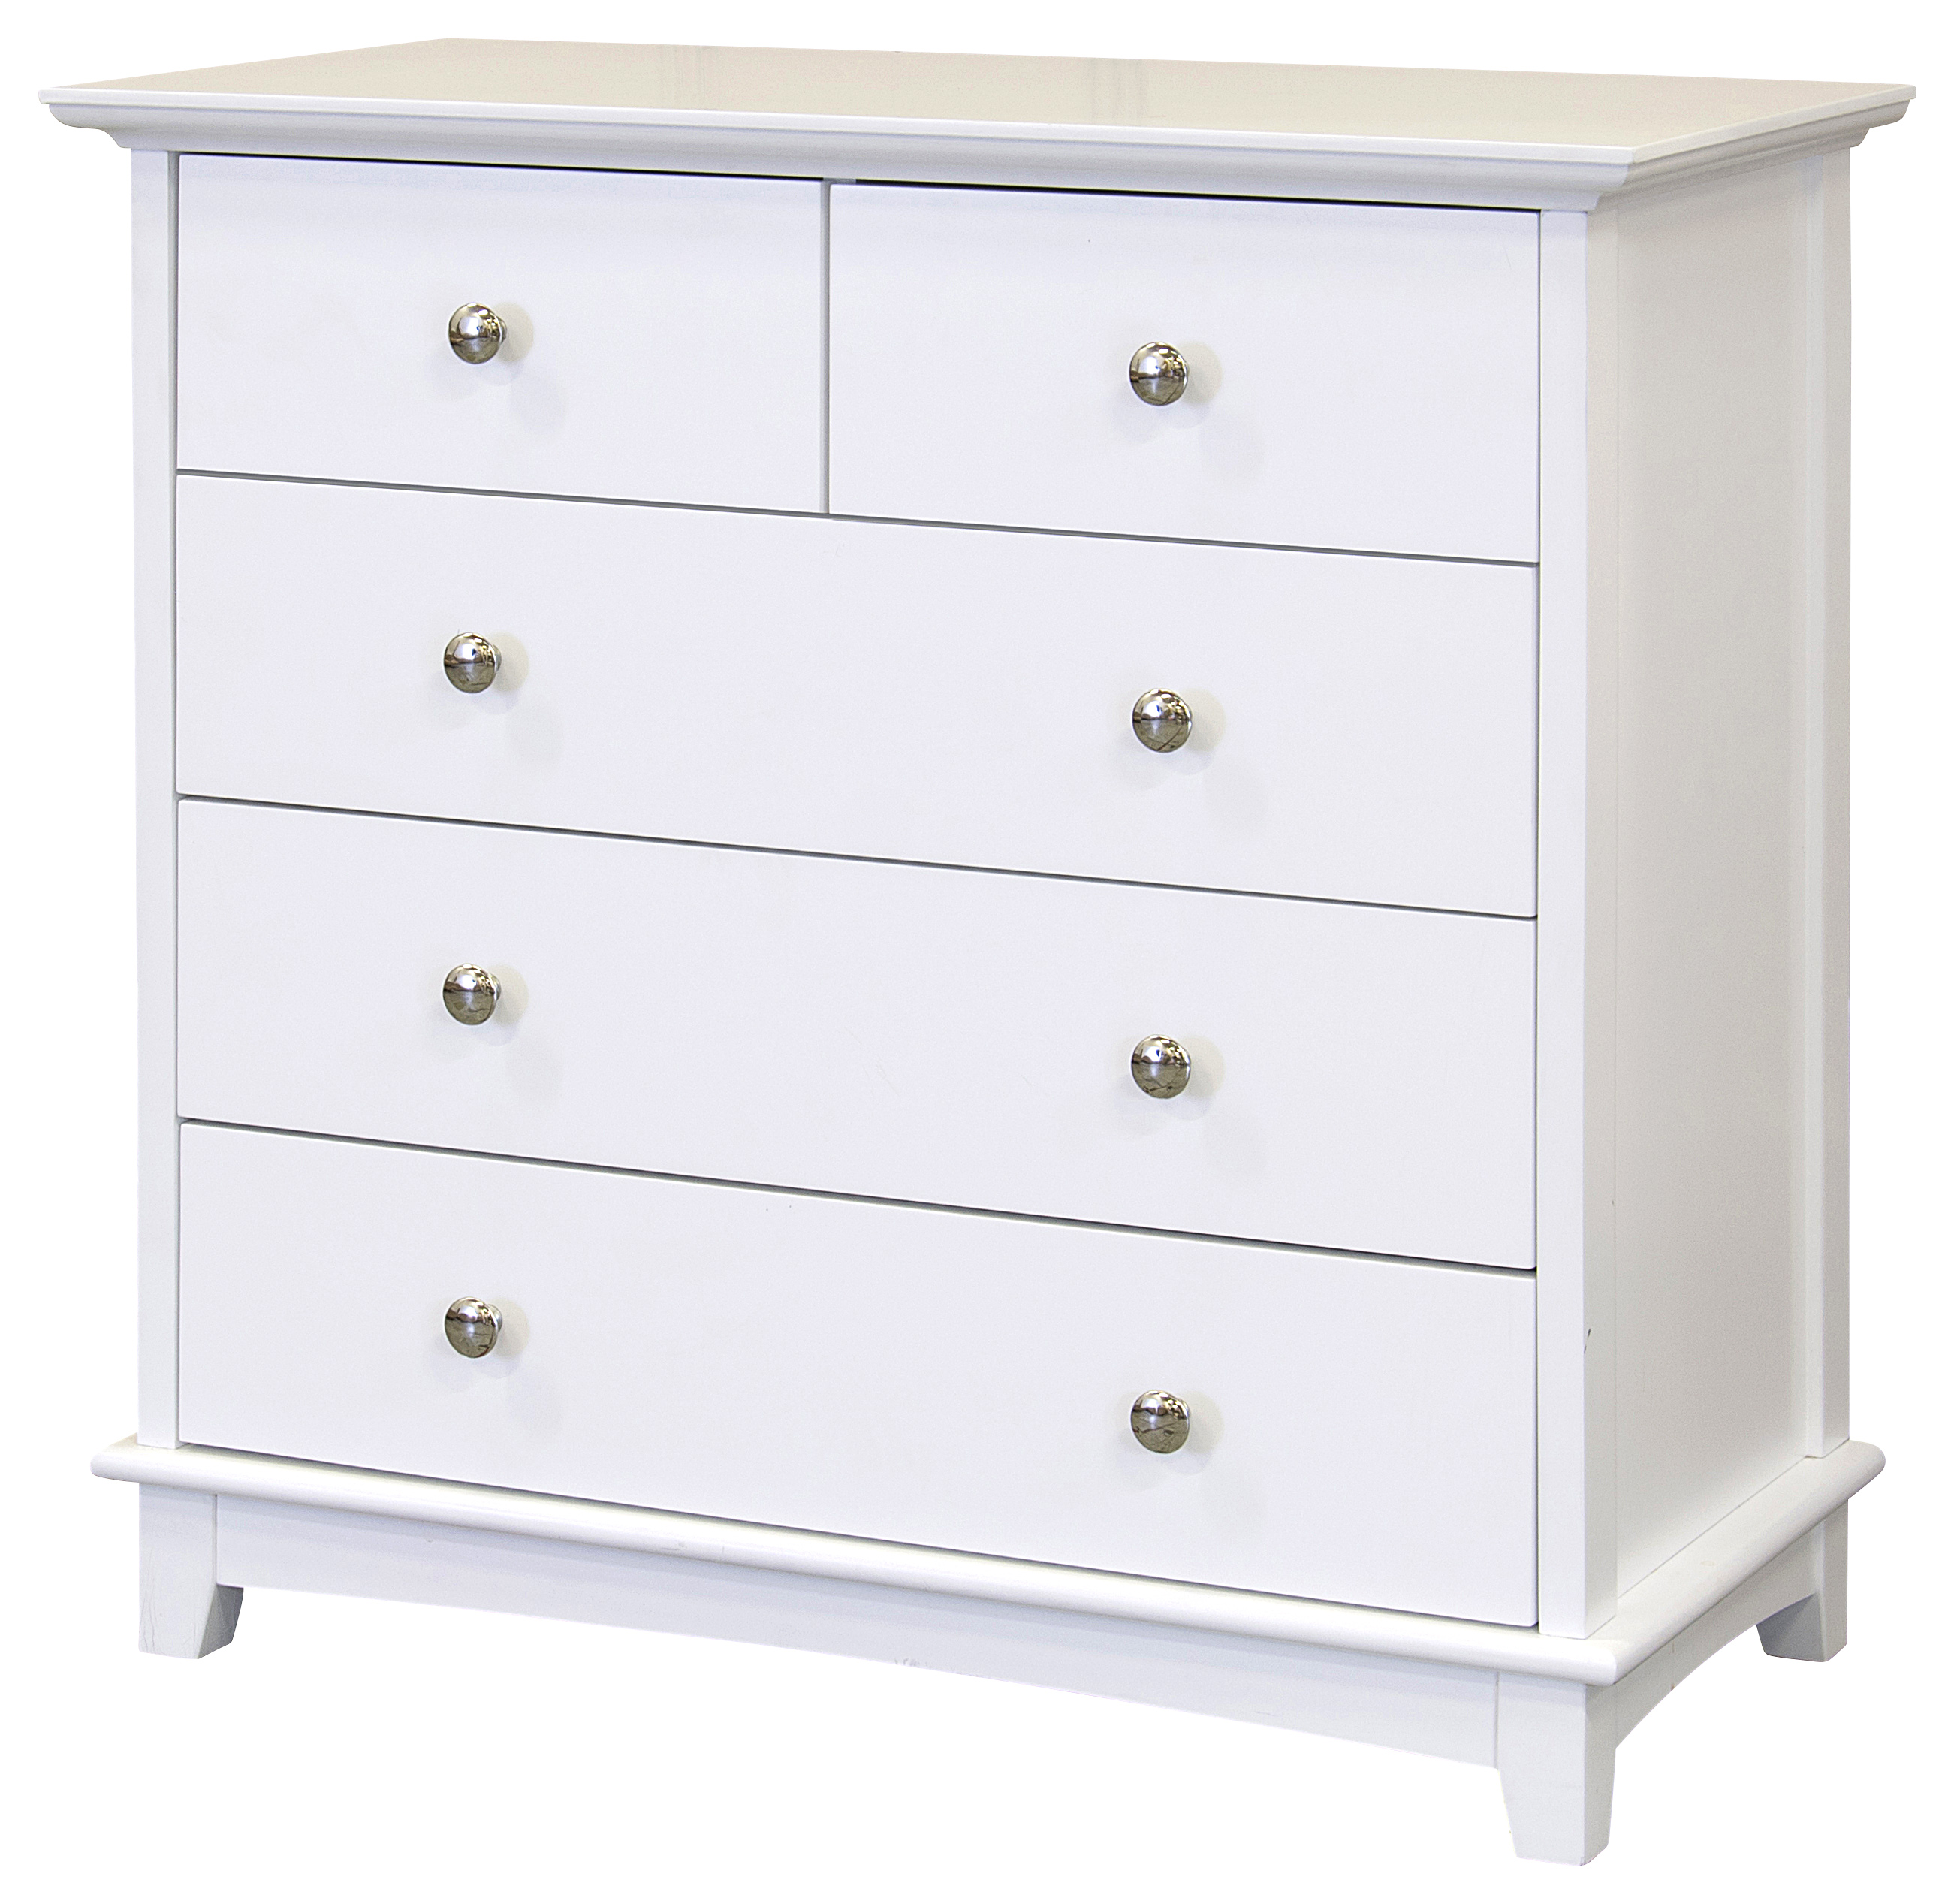 Toulouse 5 drawer bedroom chest 3 2 white painted solid wood ebay for White bedroom chest of drawers